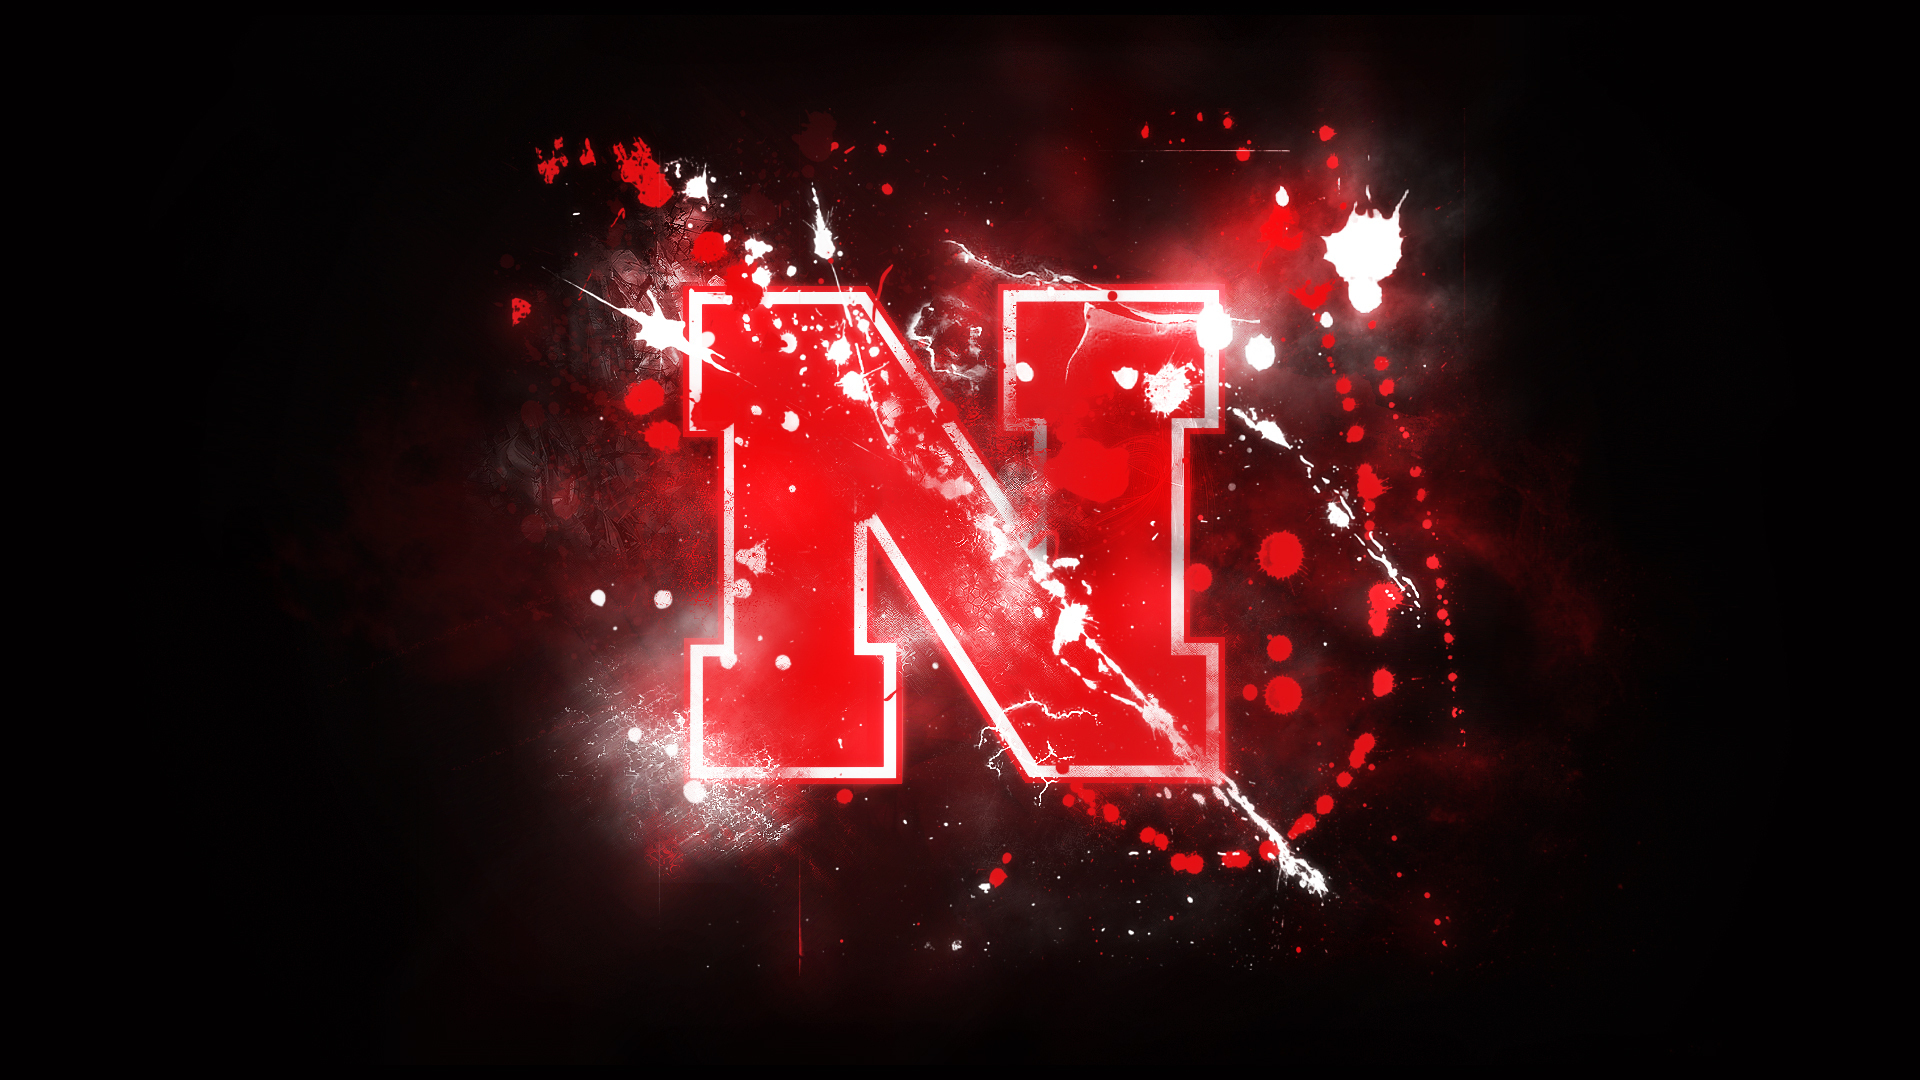 Best 40 Nebraska Wallpaper on HipWallpaper Nebraska Football 1920x1080